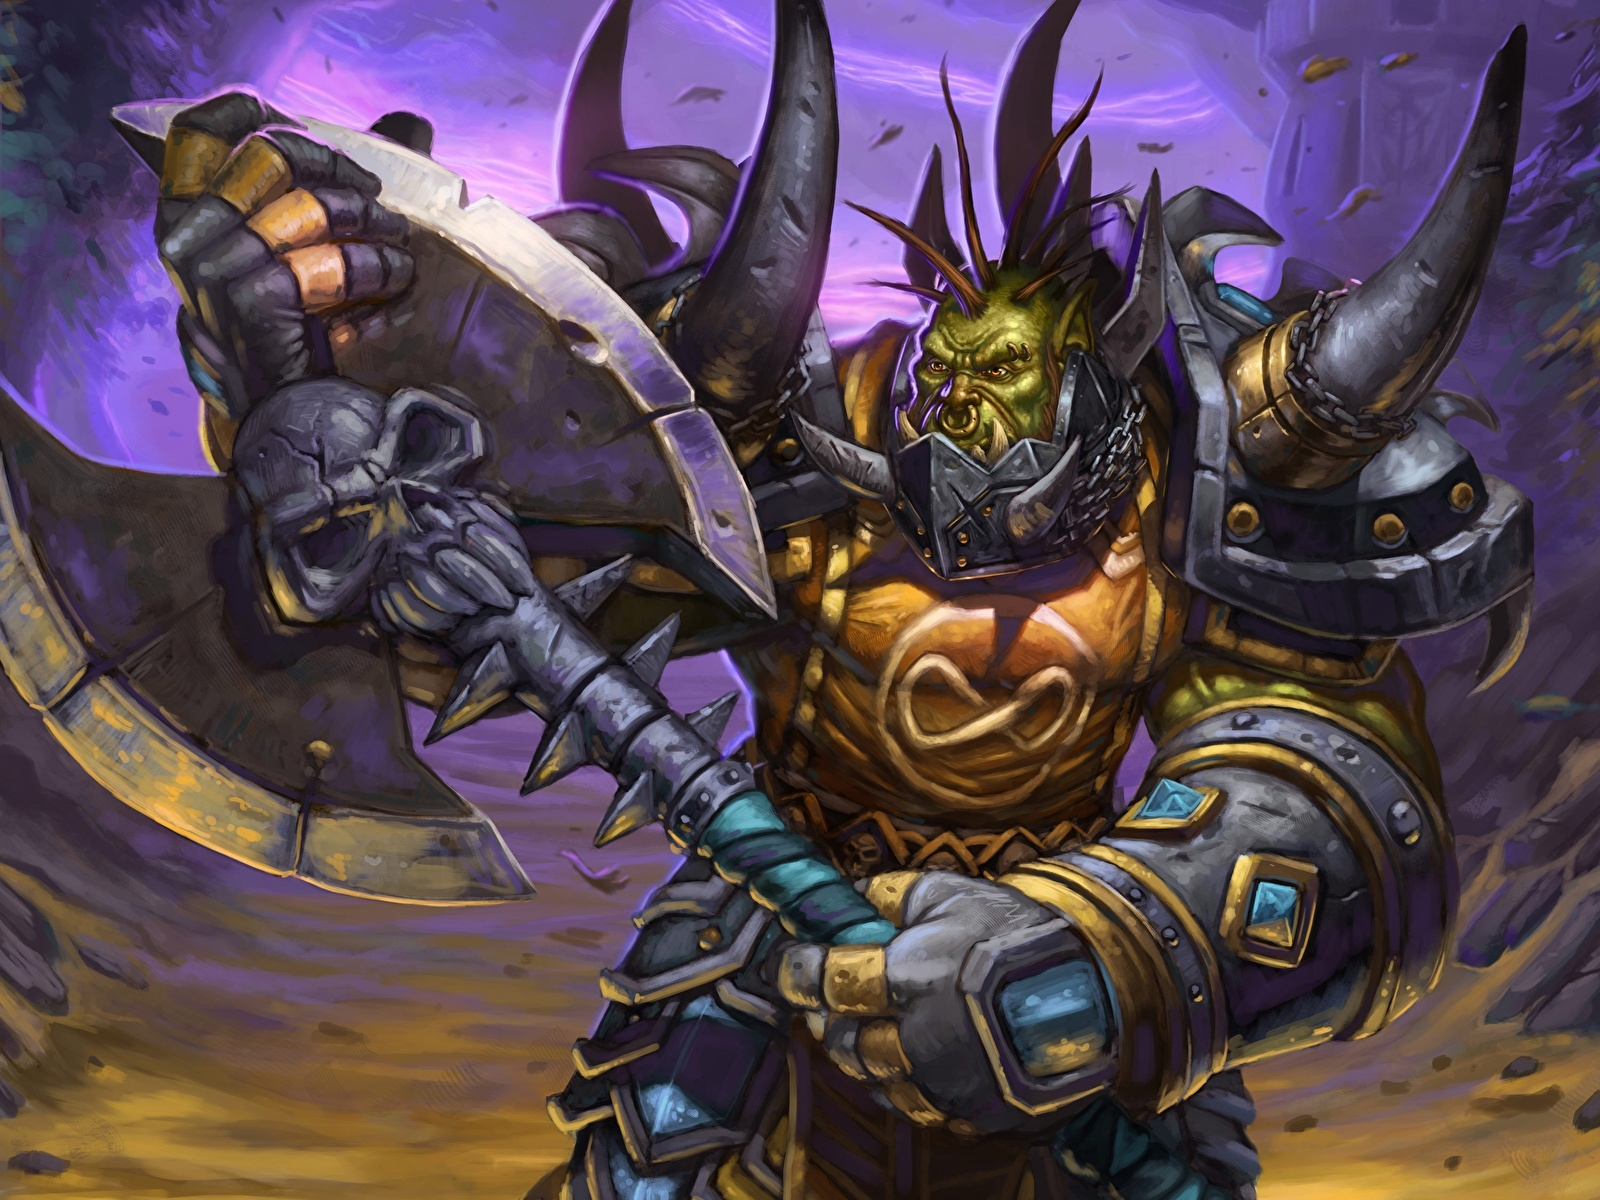 Fondos De Pantalla 1600x1200 World Of Warcraft Monstruos Orco